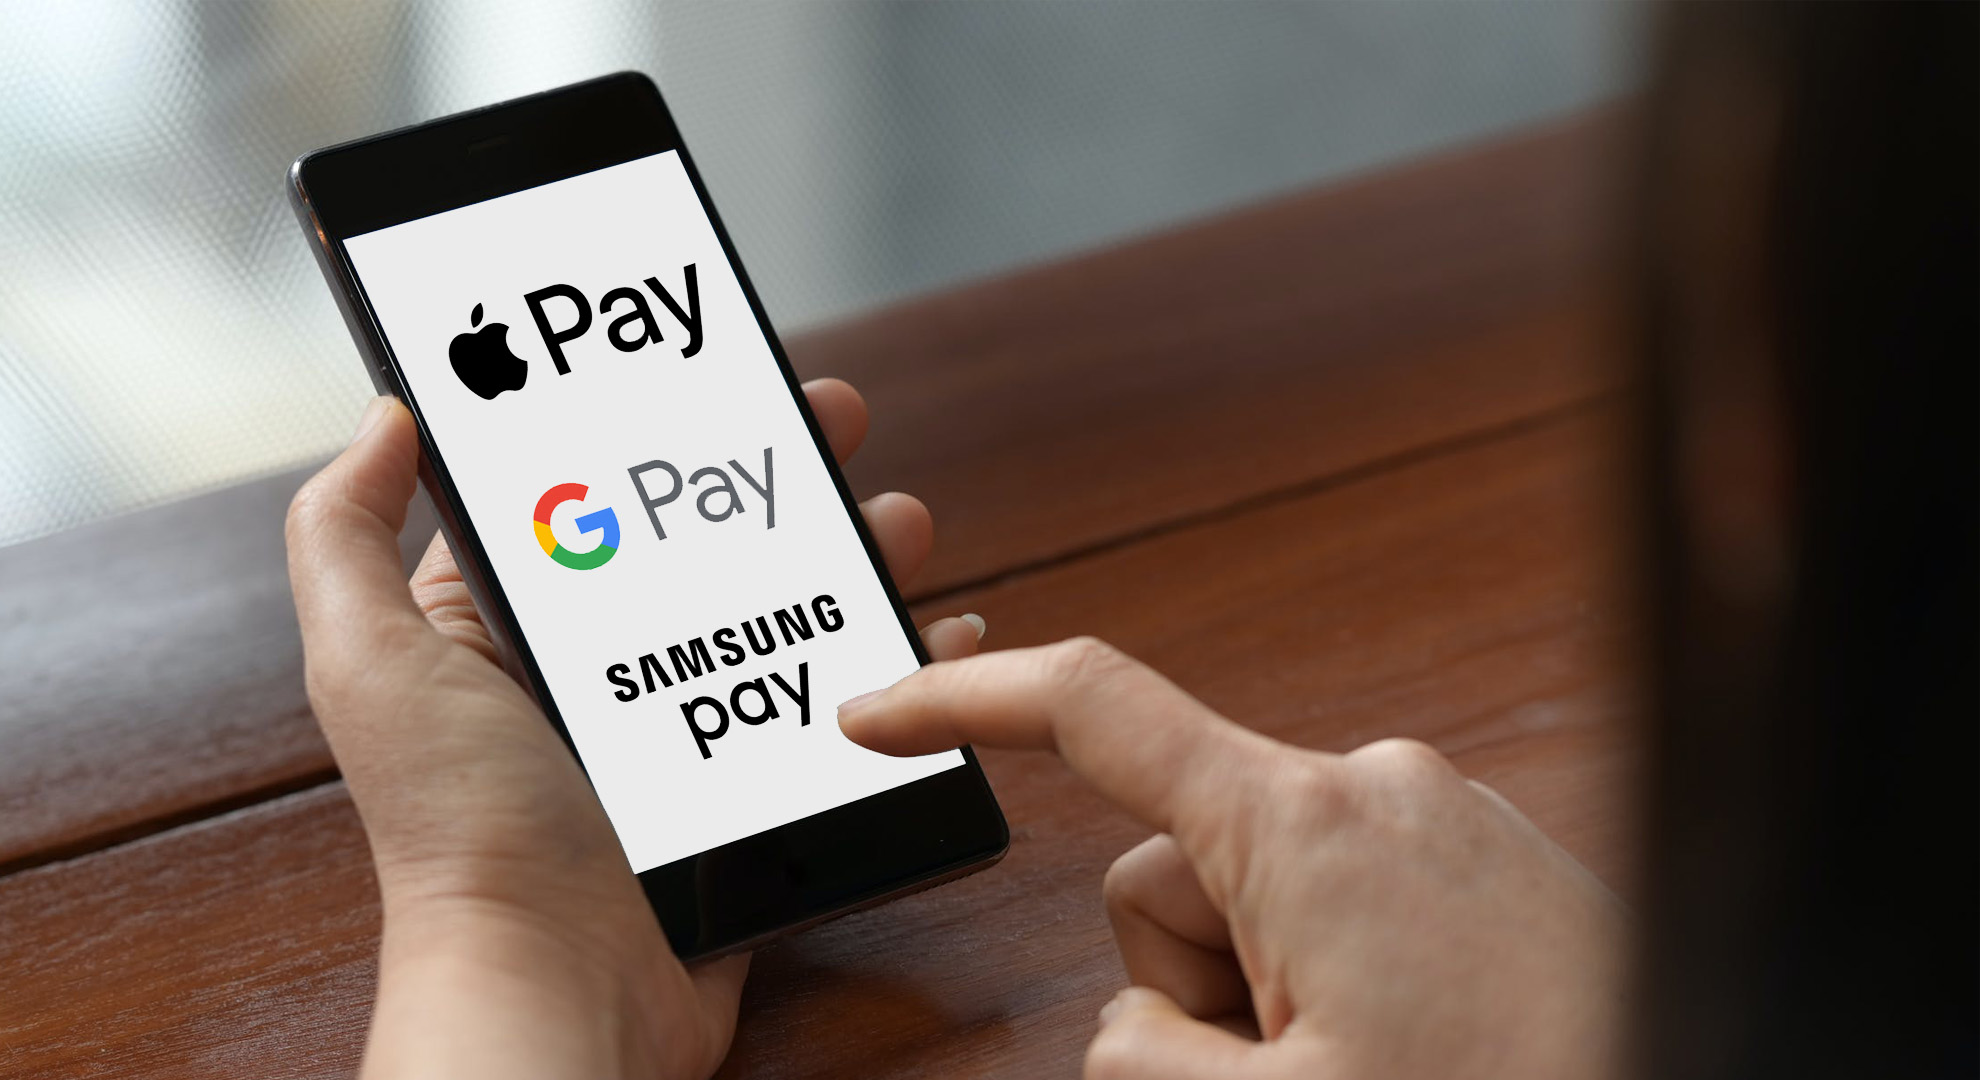 Apple Pay, Samsung Pay, and Google Pay logos on cell phone